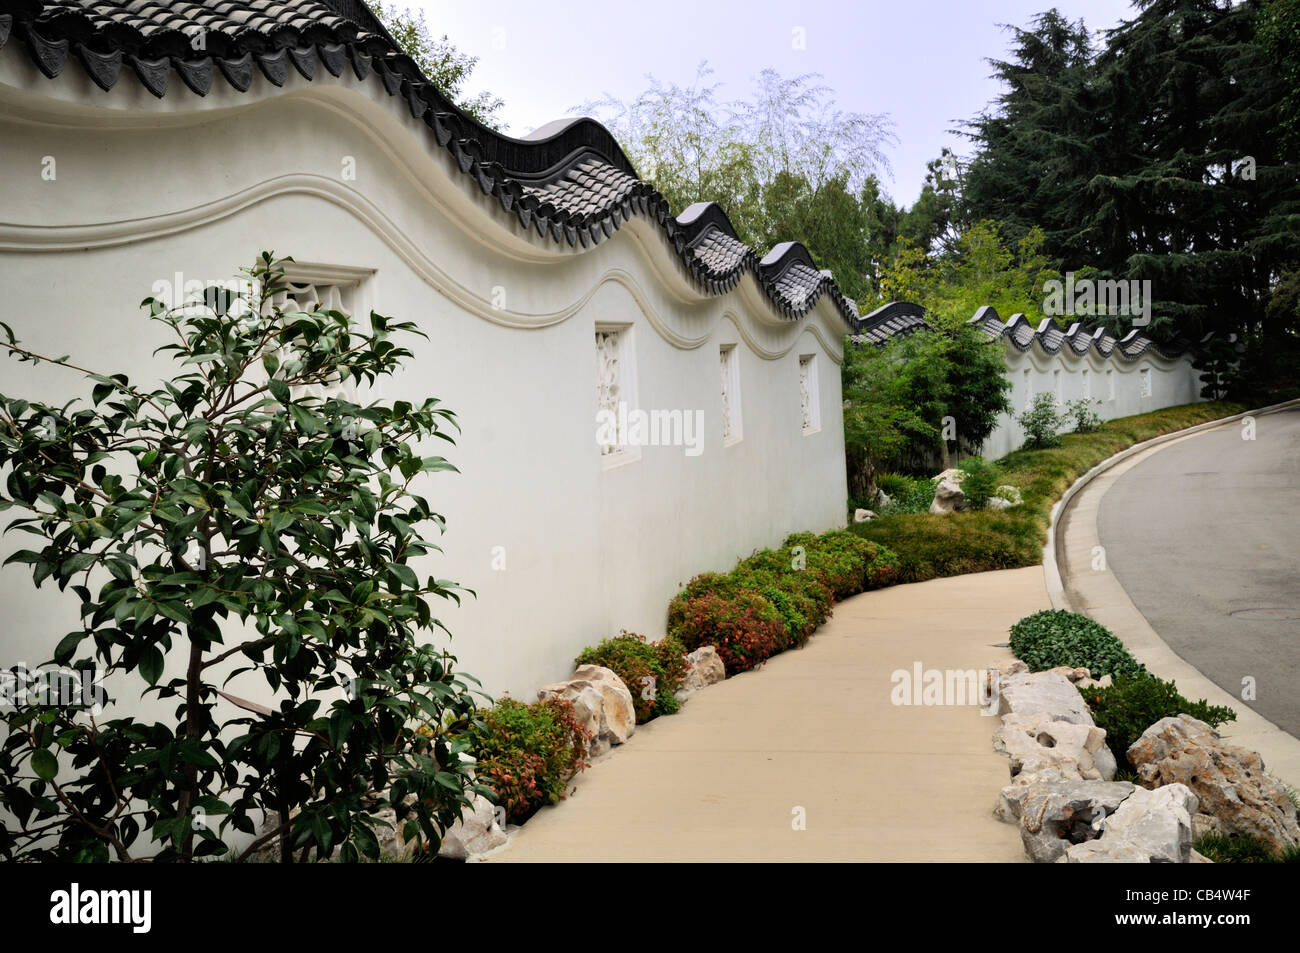 Wall in the Chinese garden, Huntington Botanical Garden, San Marino, California Stock Photo